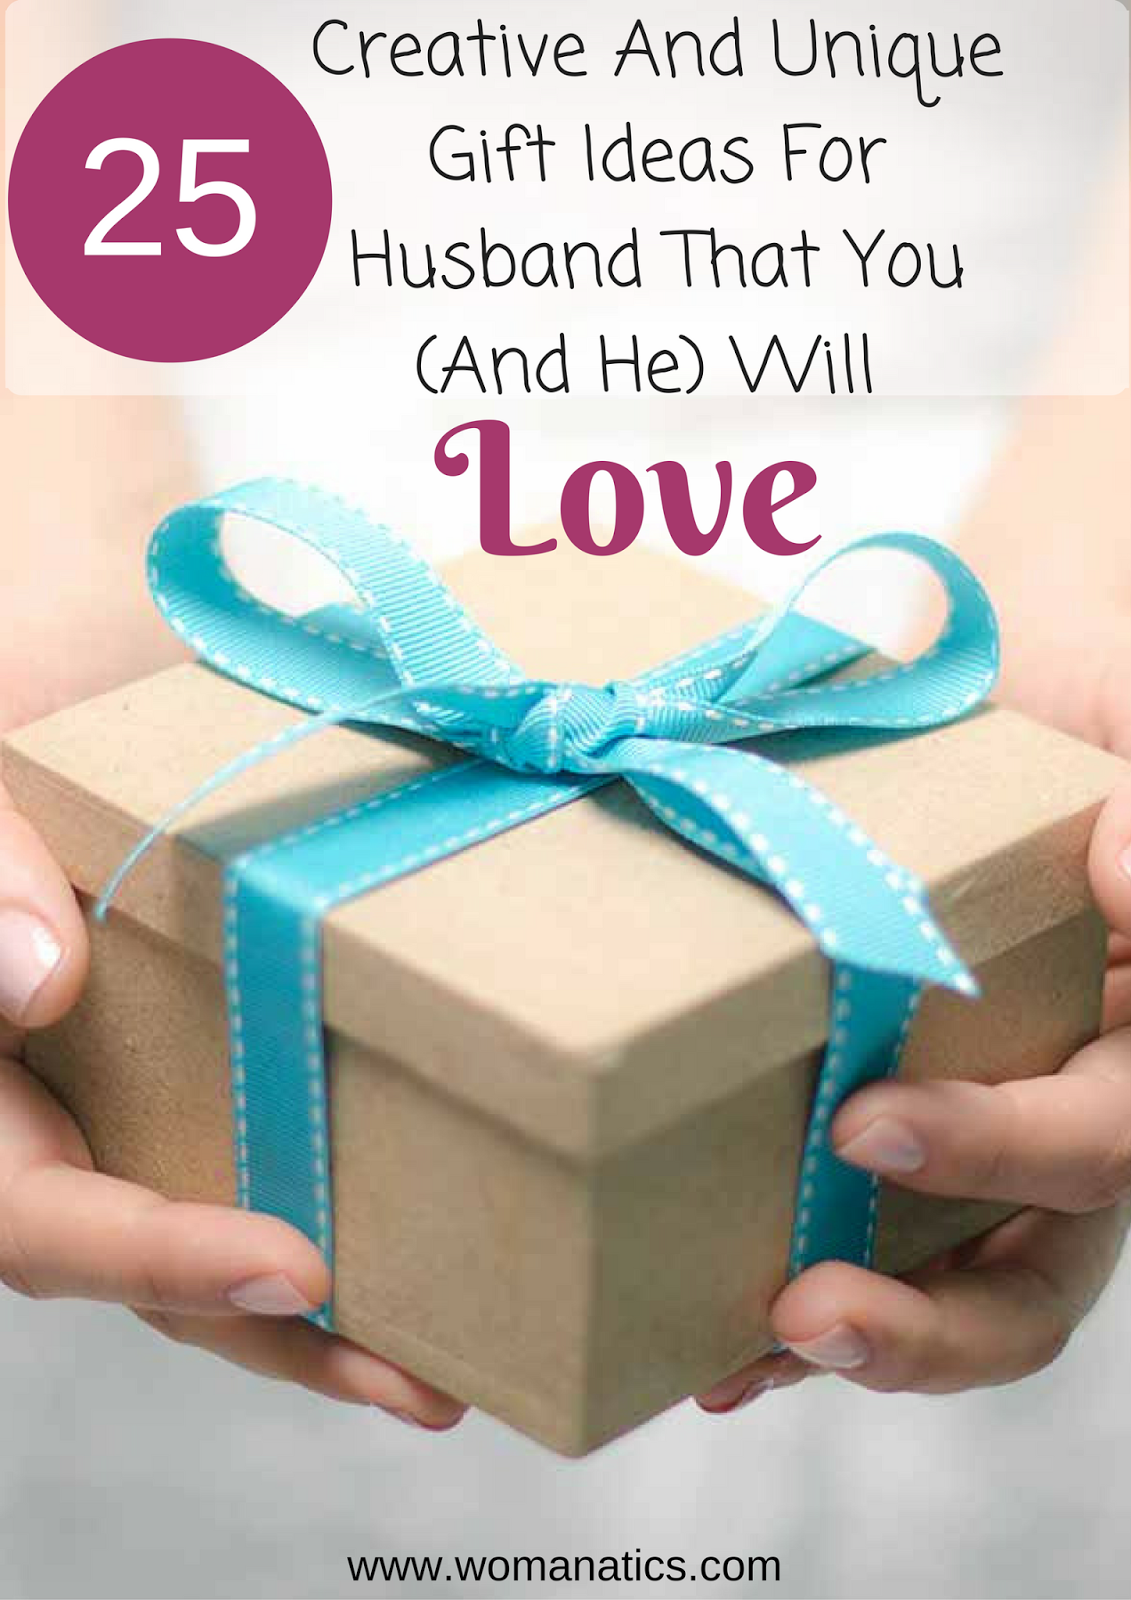 25 Creative And Unique Gift Ideas For Husbands Birthday That You